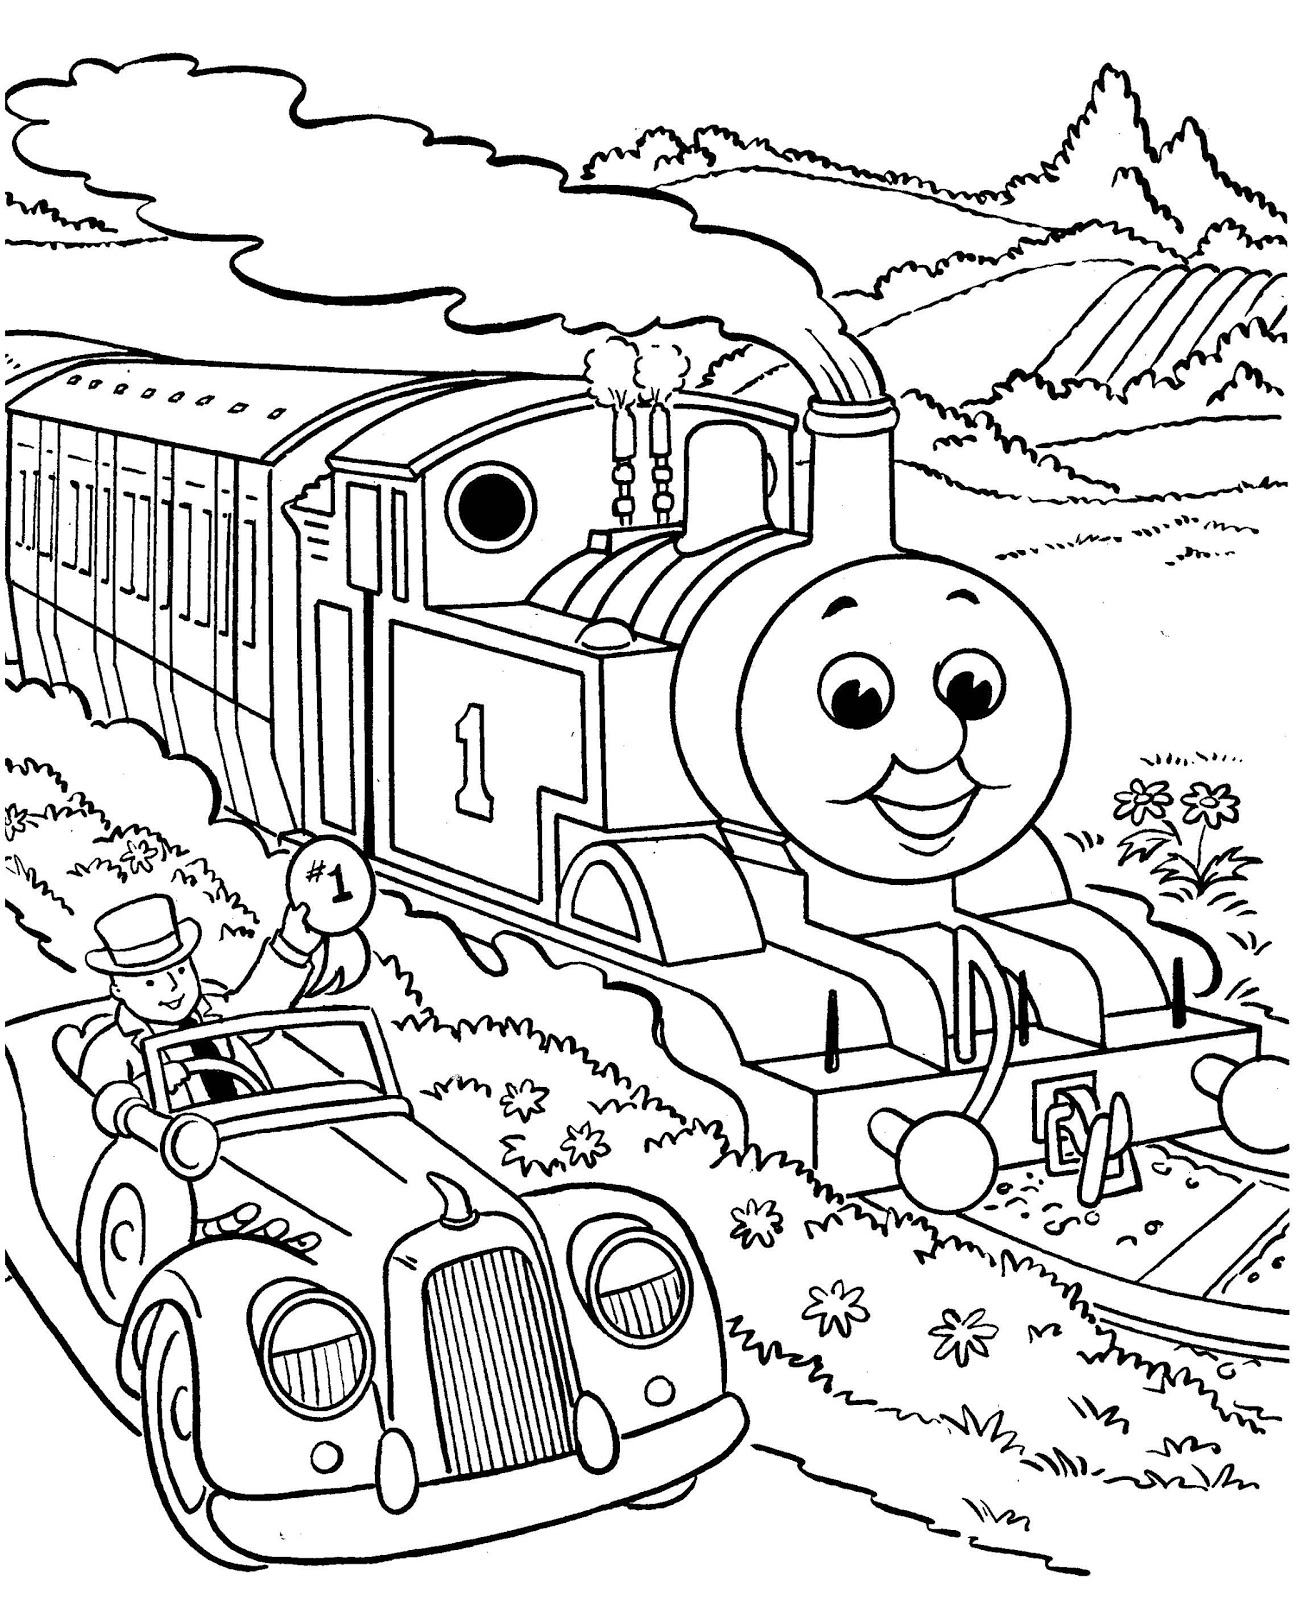 Free Printable Coloring Pages For Boys Coloring Pages Gallery